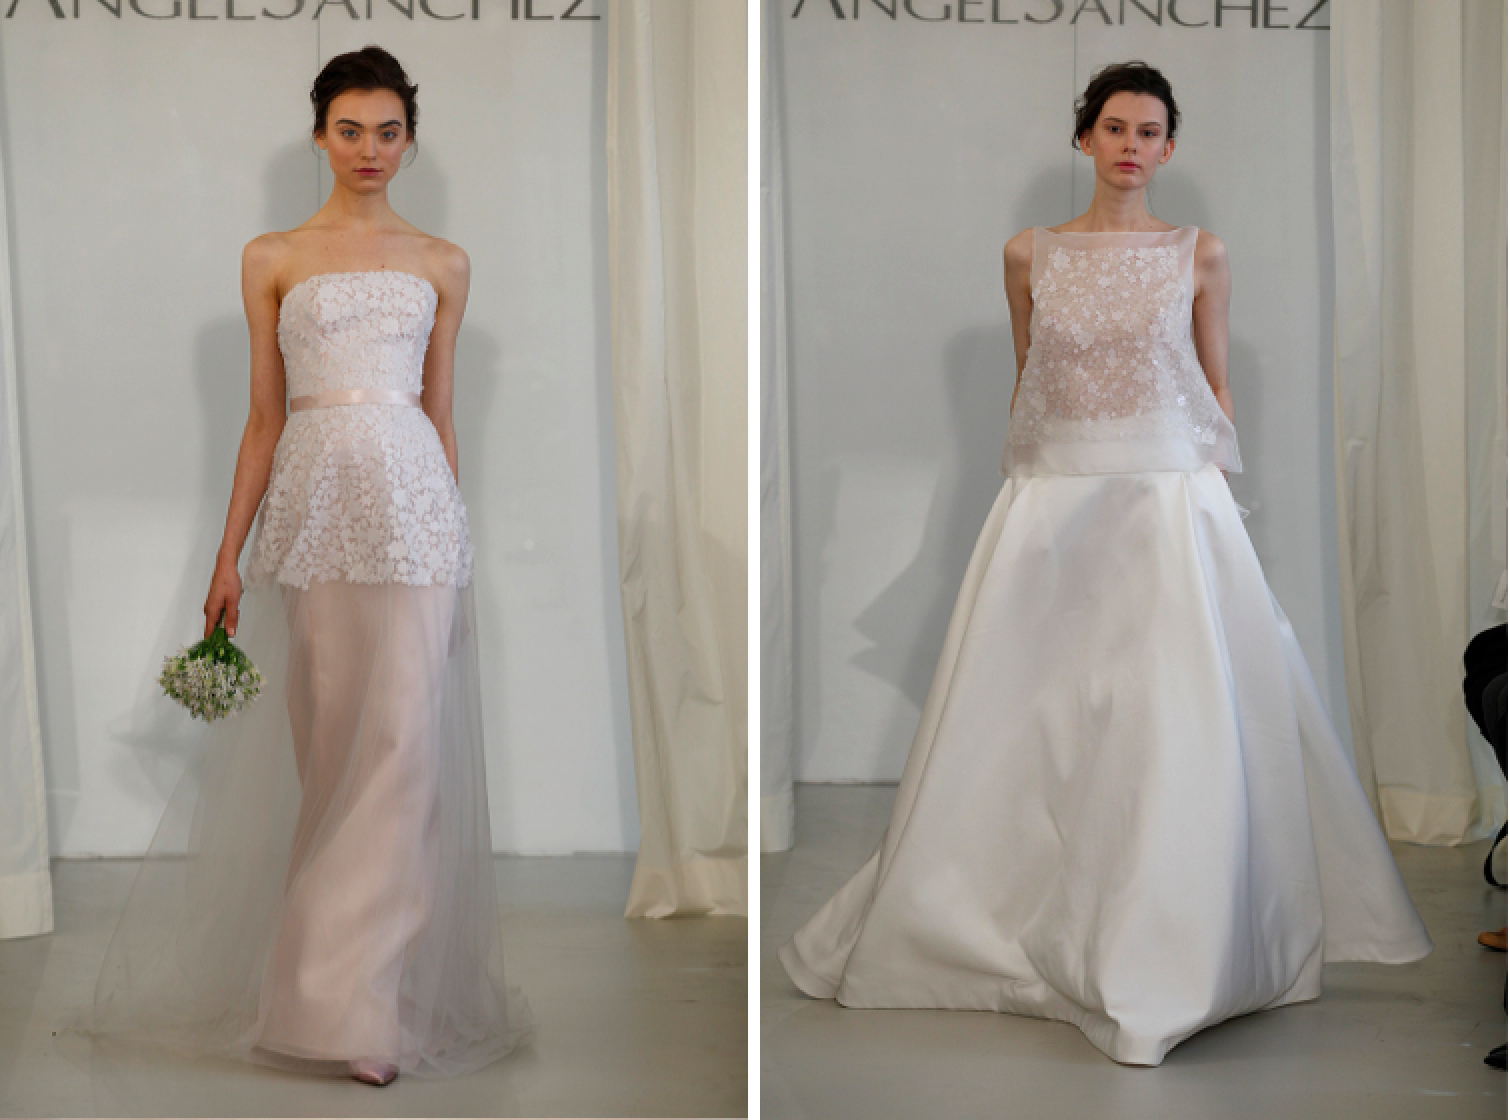 Wedding Dresses, Romantic Wedding Dresses, Fashion, Modern Weddings, Angel sanchez